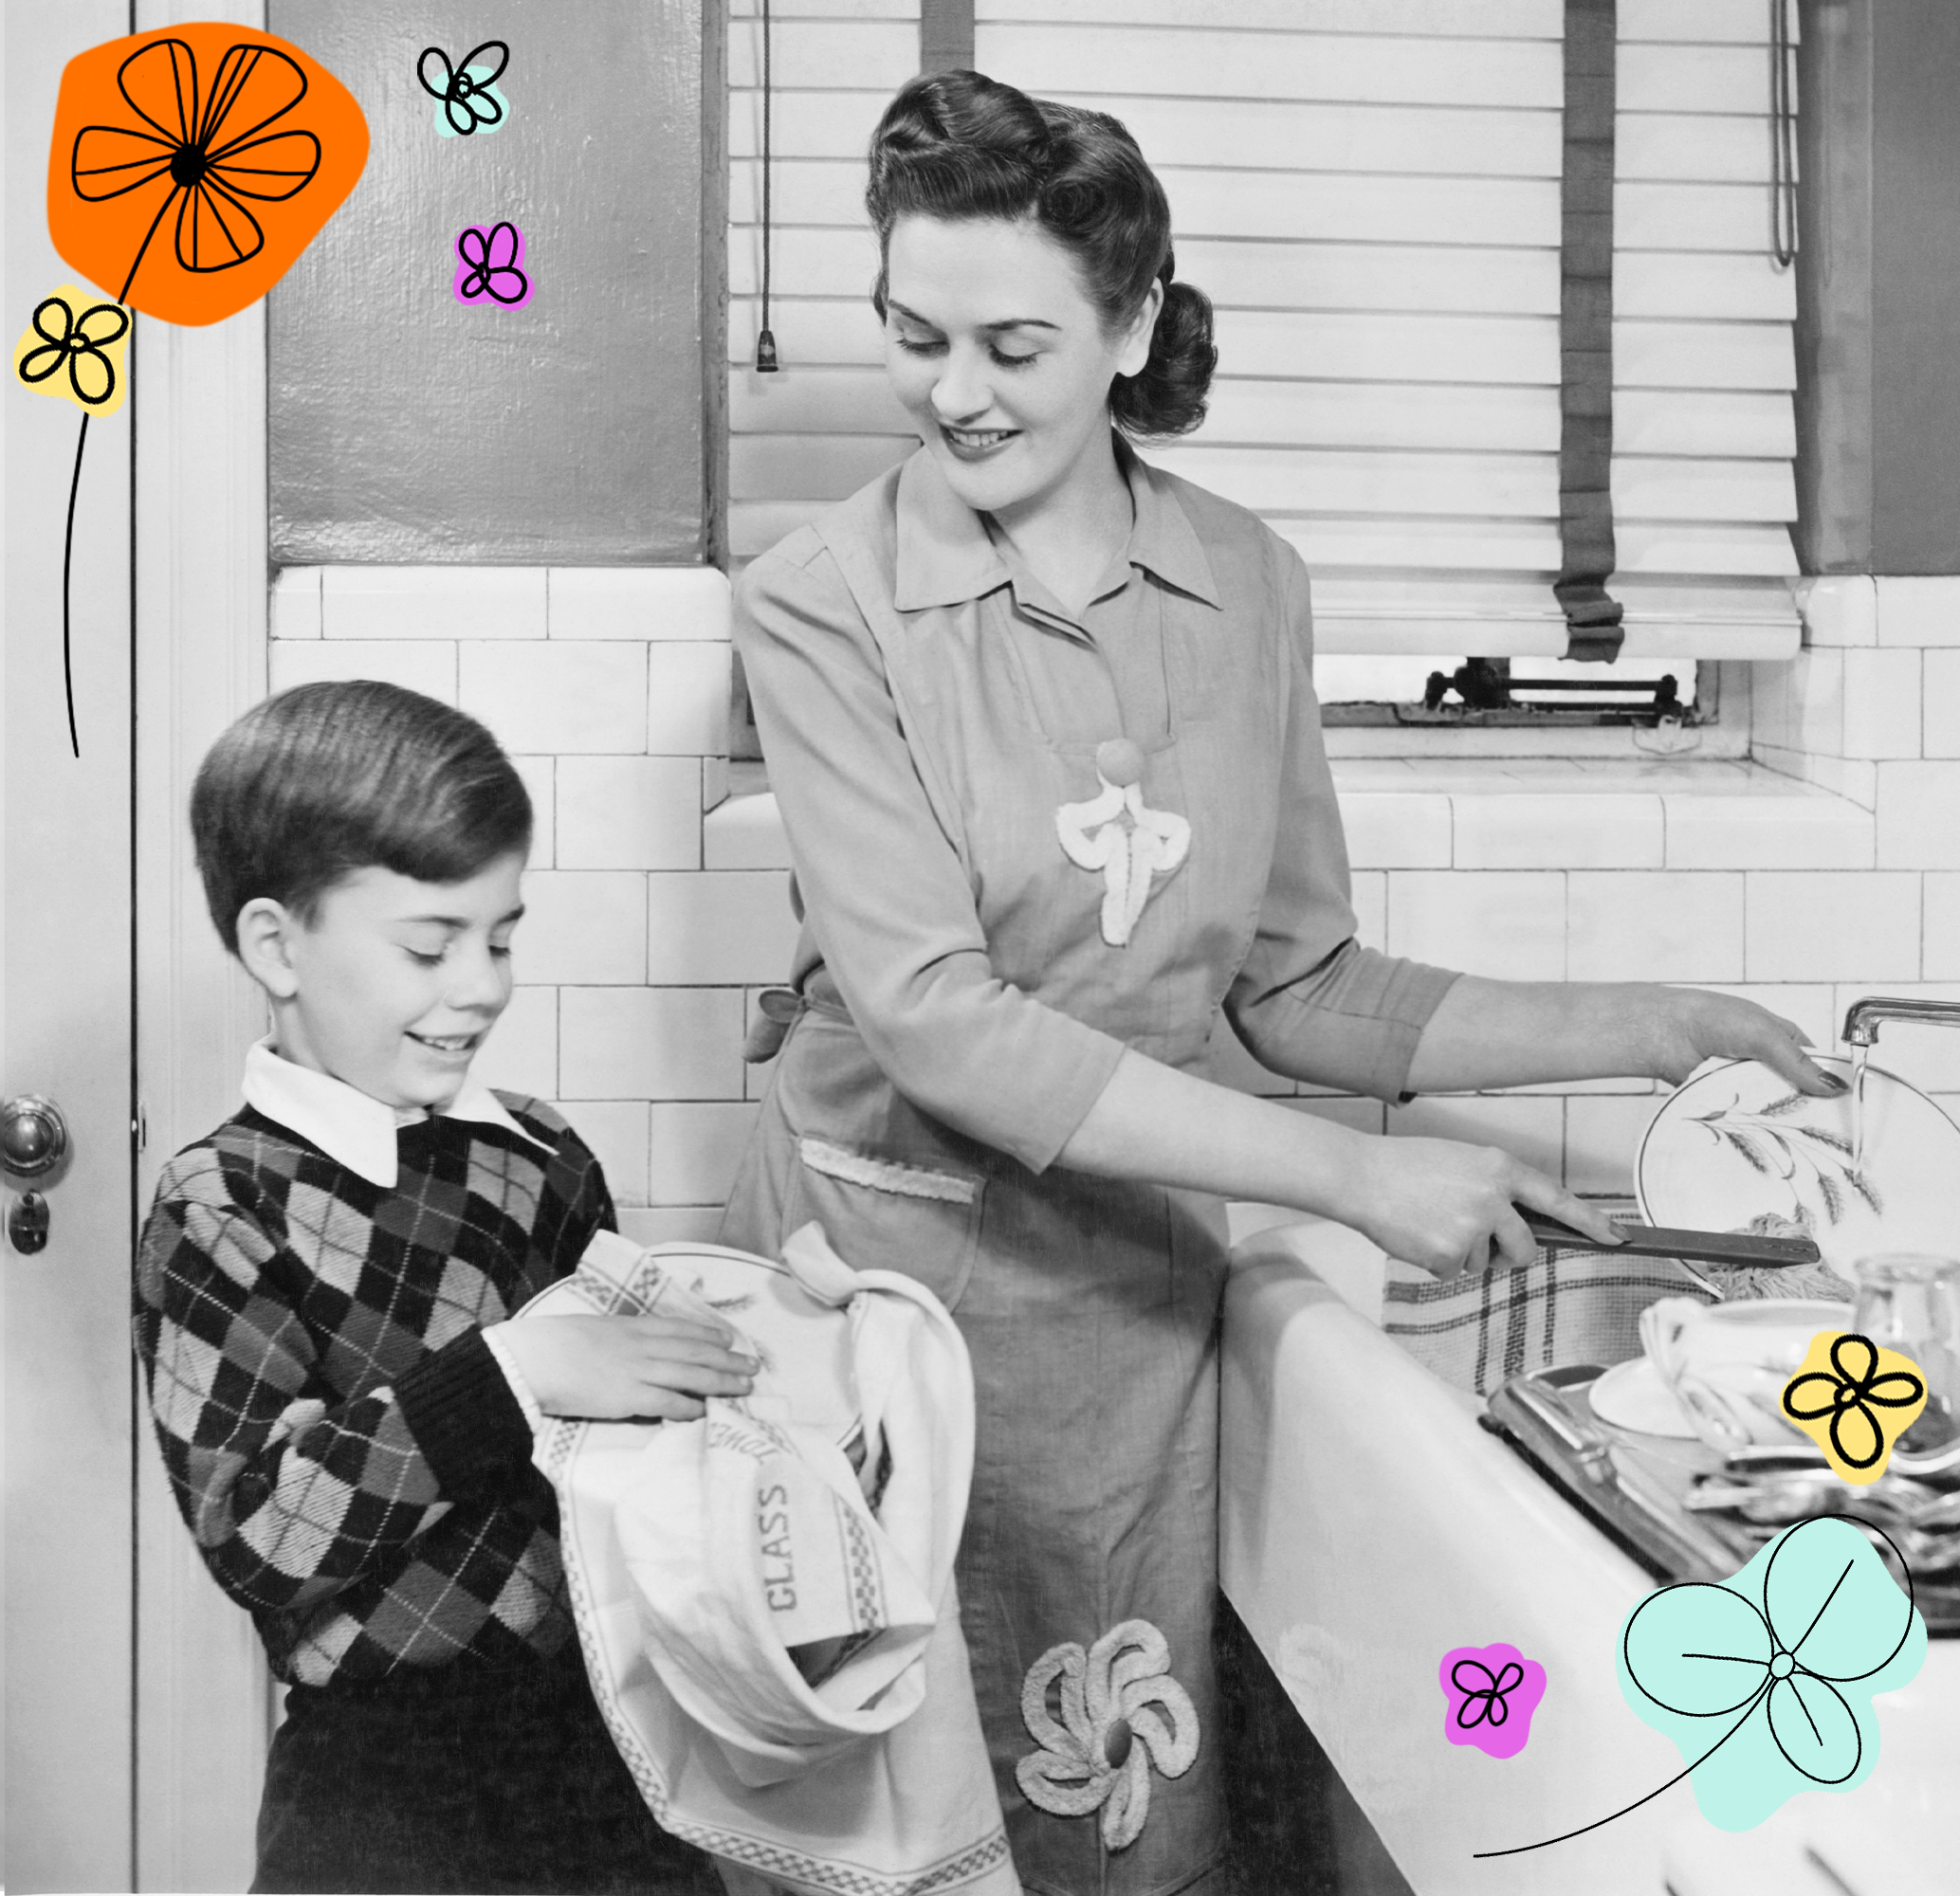 mother and sol cleaning the dishes in the kitchen